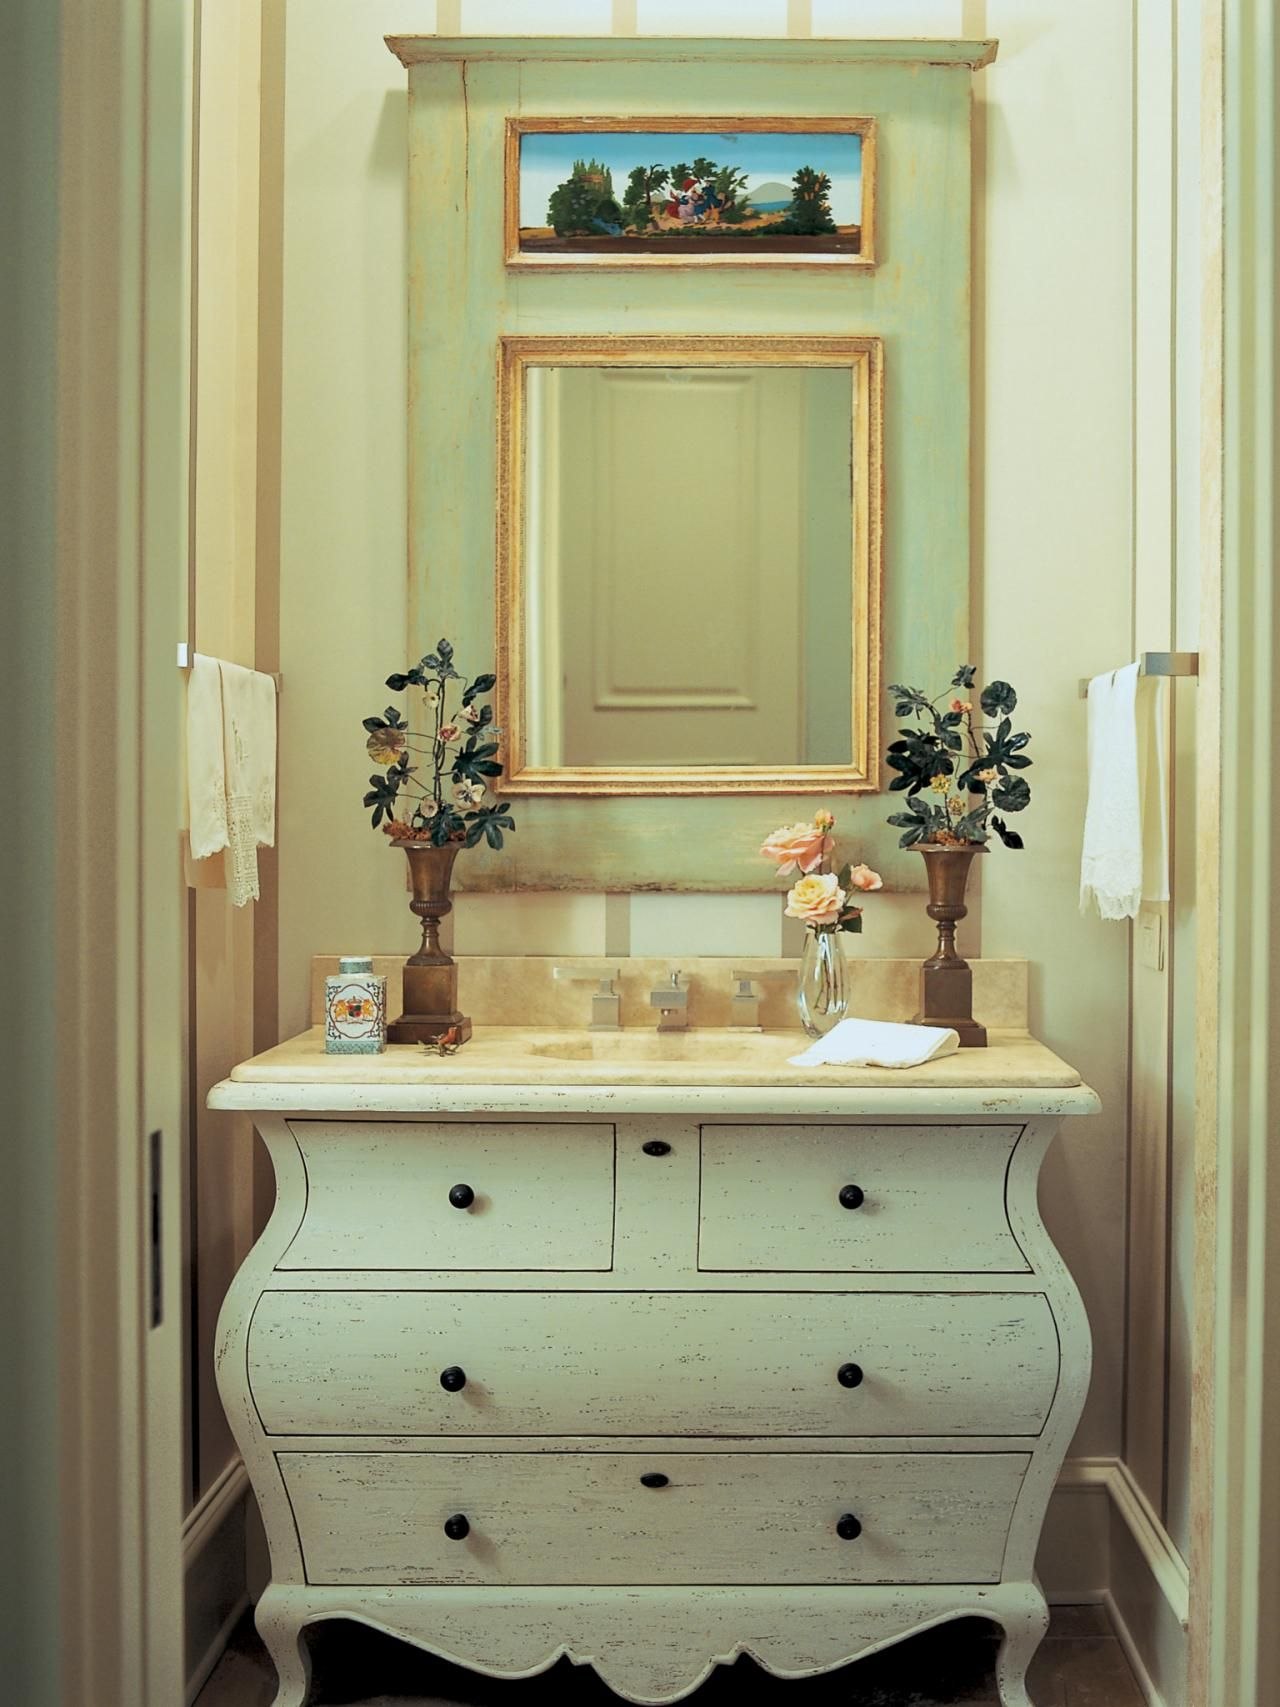 A Swedish Style Dresser Is Refurbished As A Vanity with A Sink In